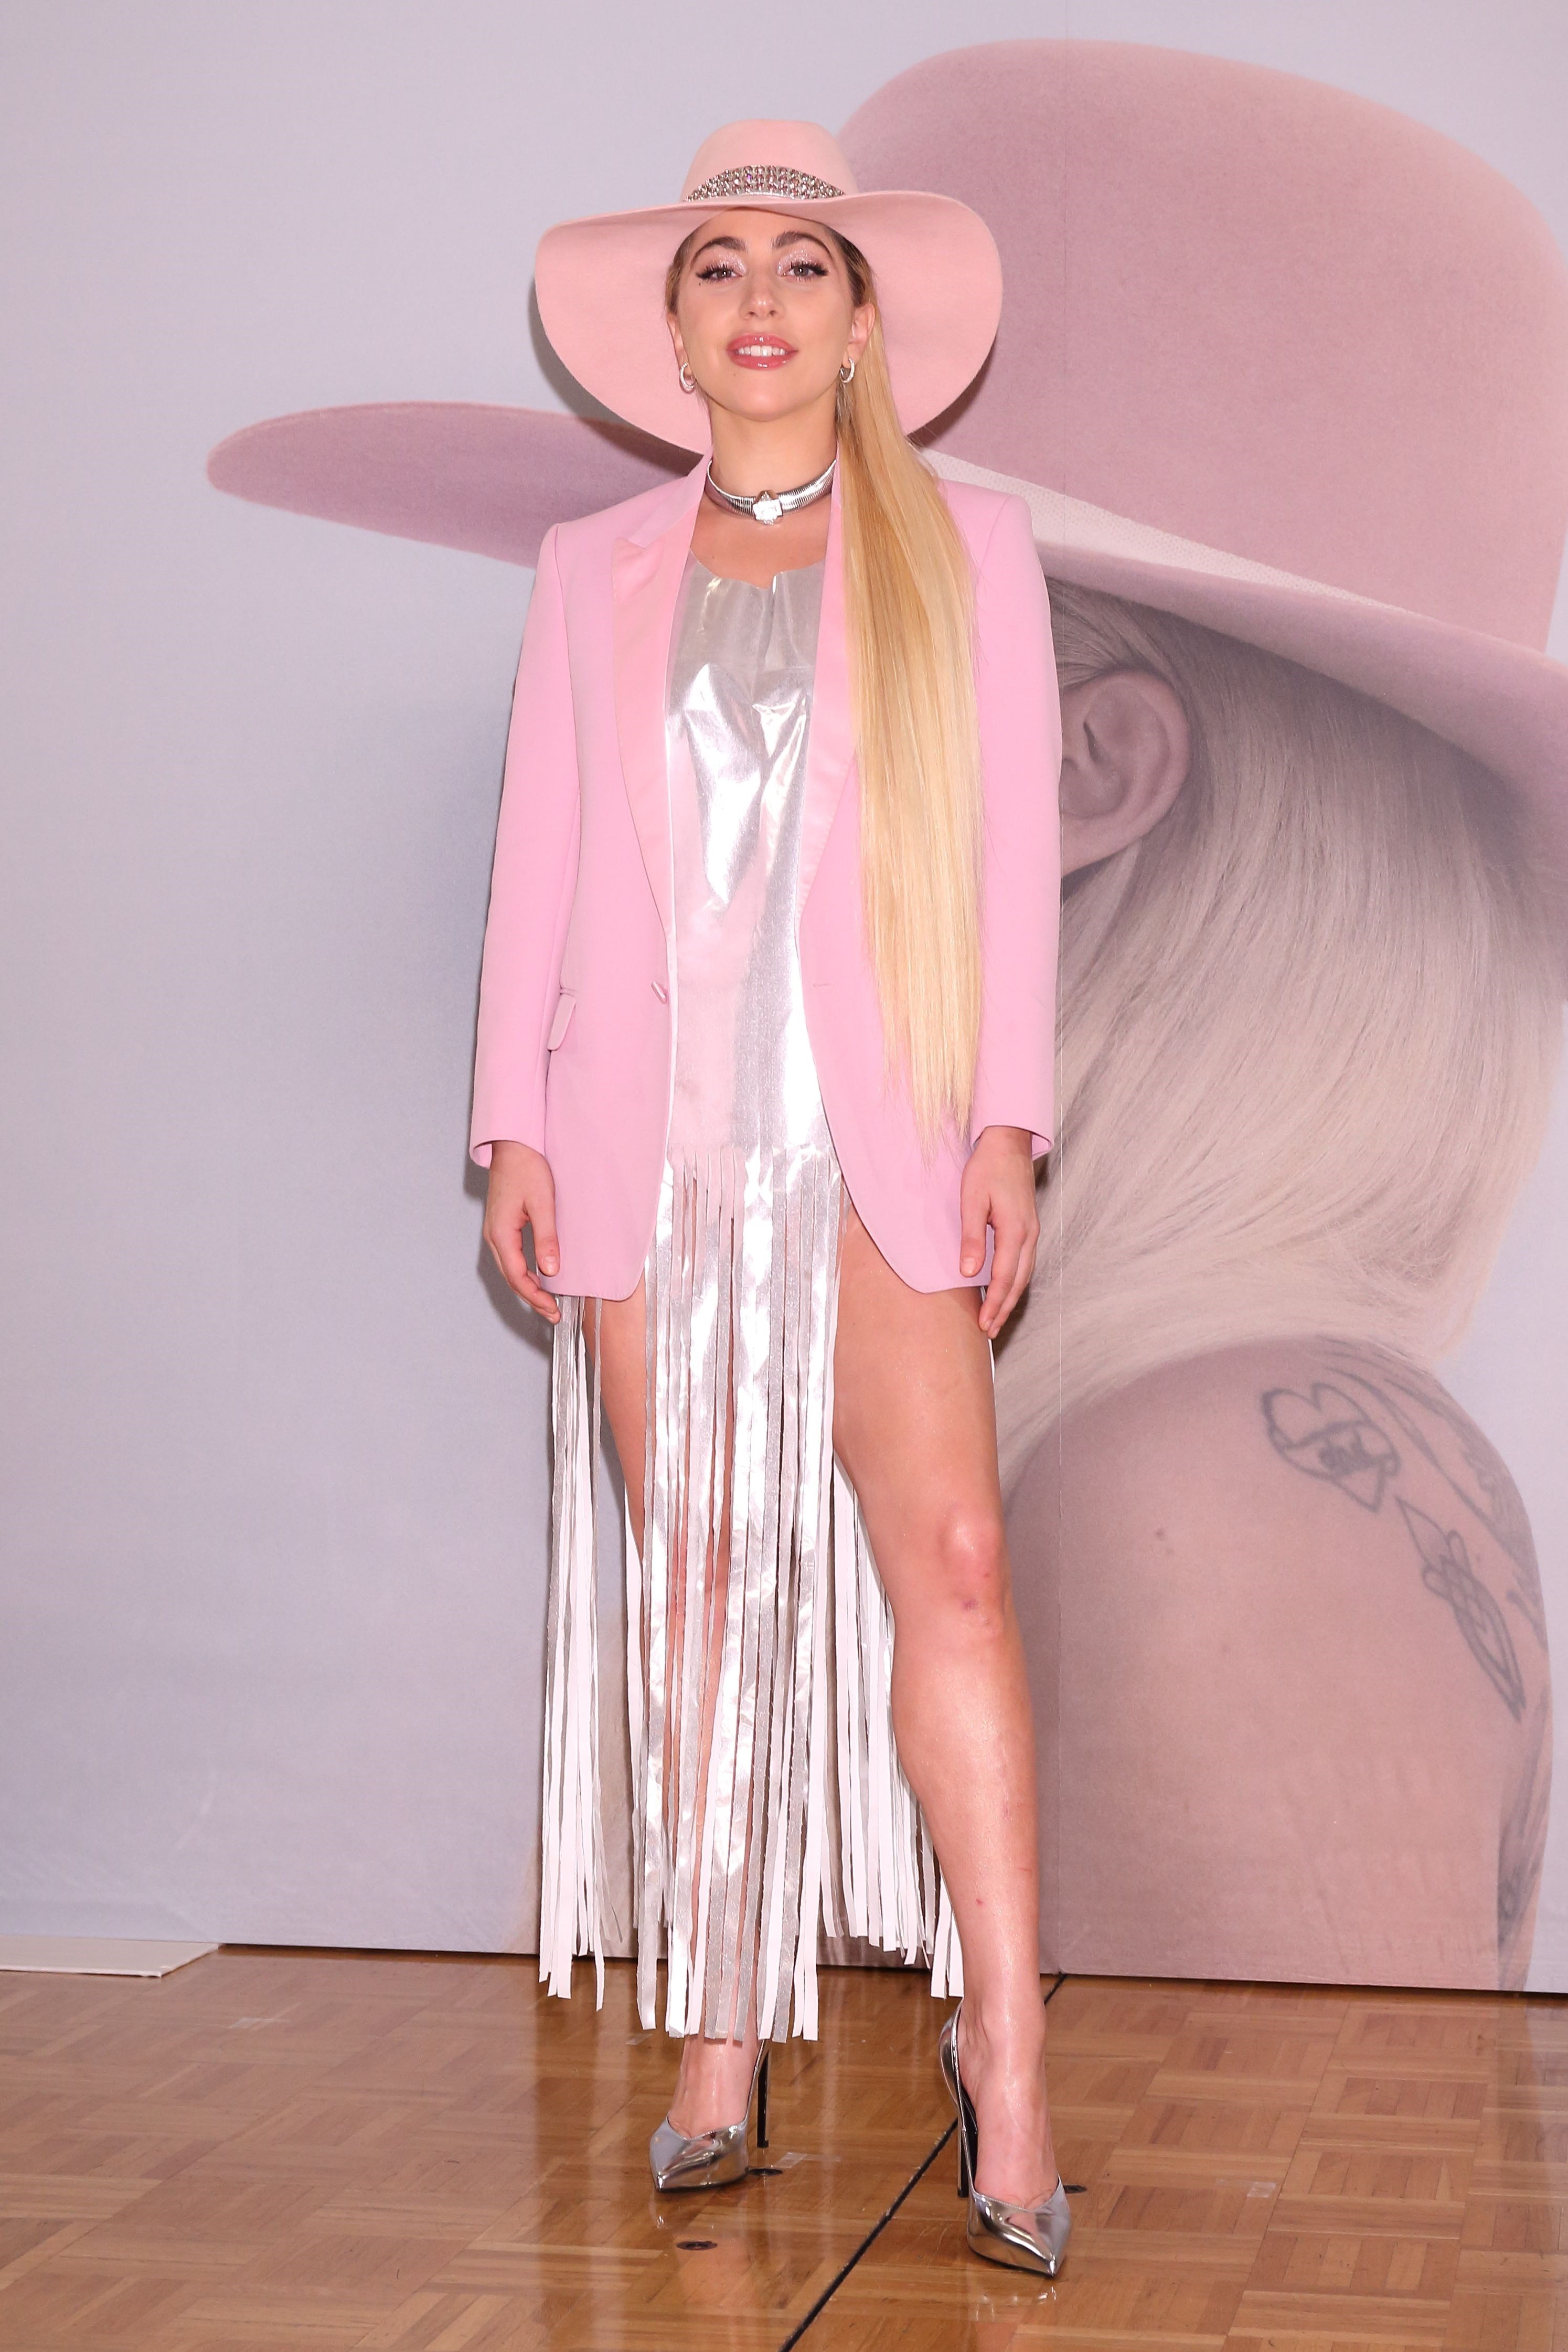 Lady Gaga spotted on date with mystery man